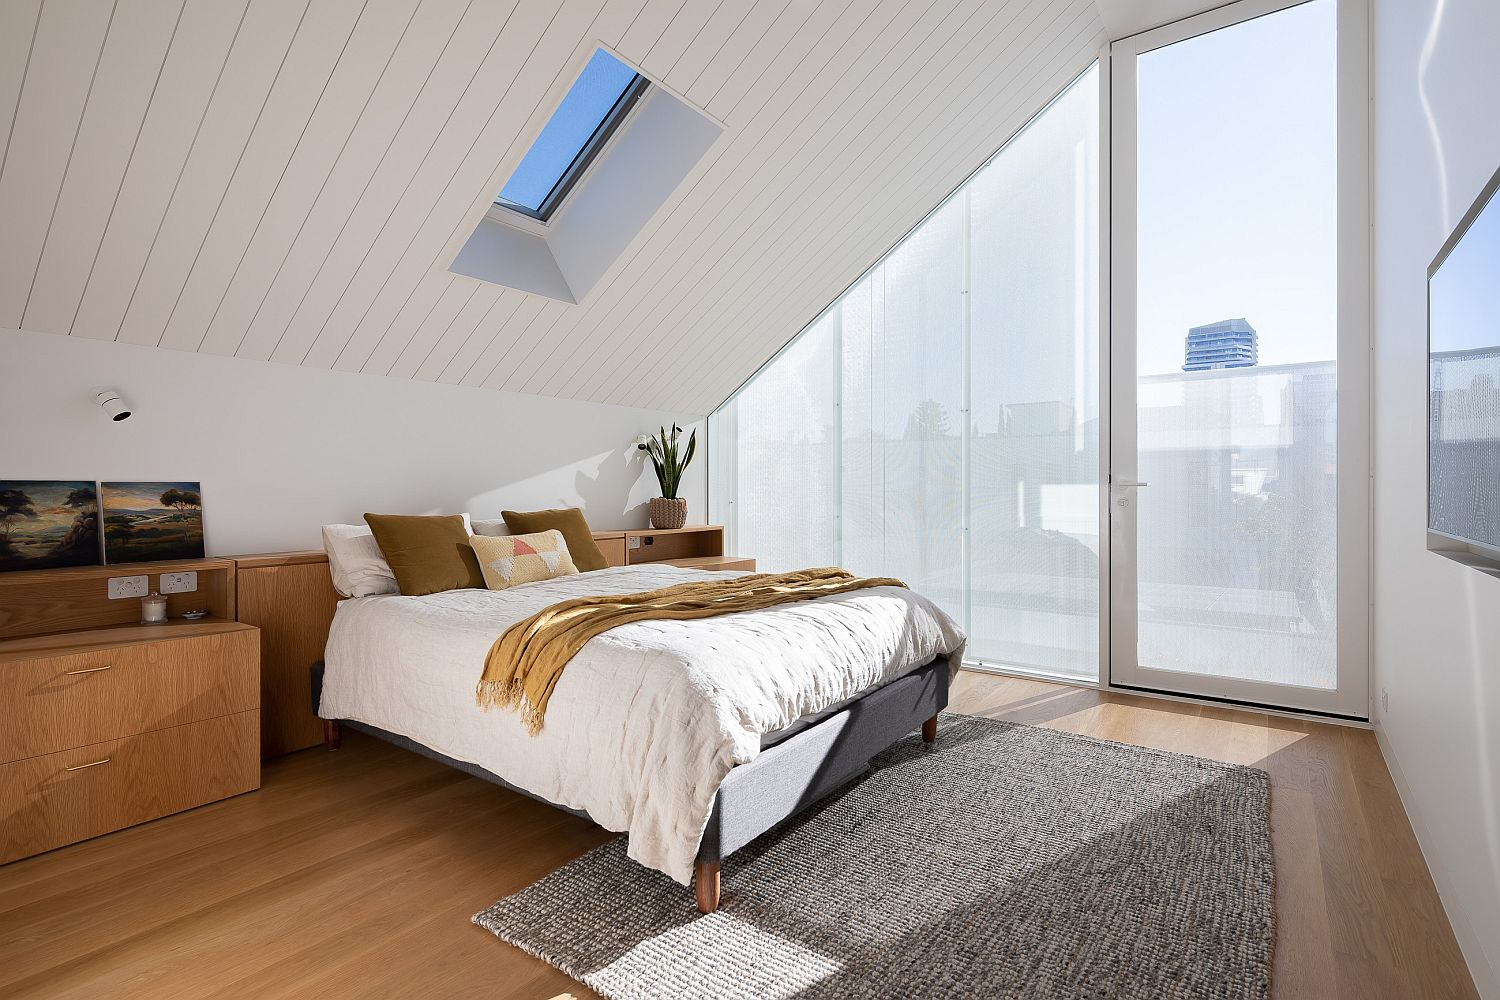 Bedroom with slanting ceiling, skylight and glass walls feels spacious and modern